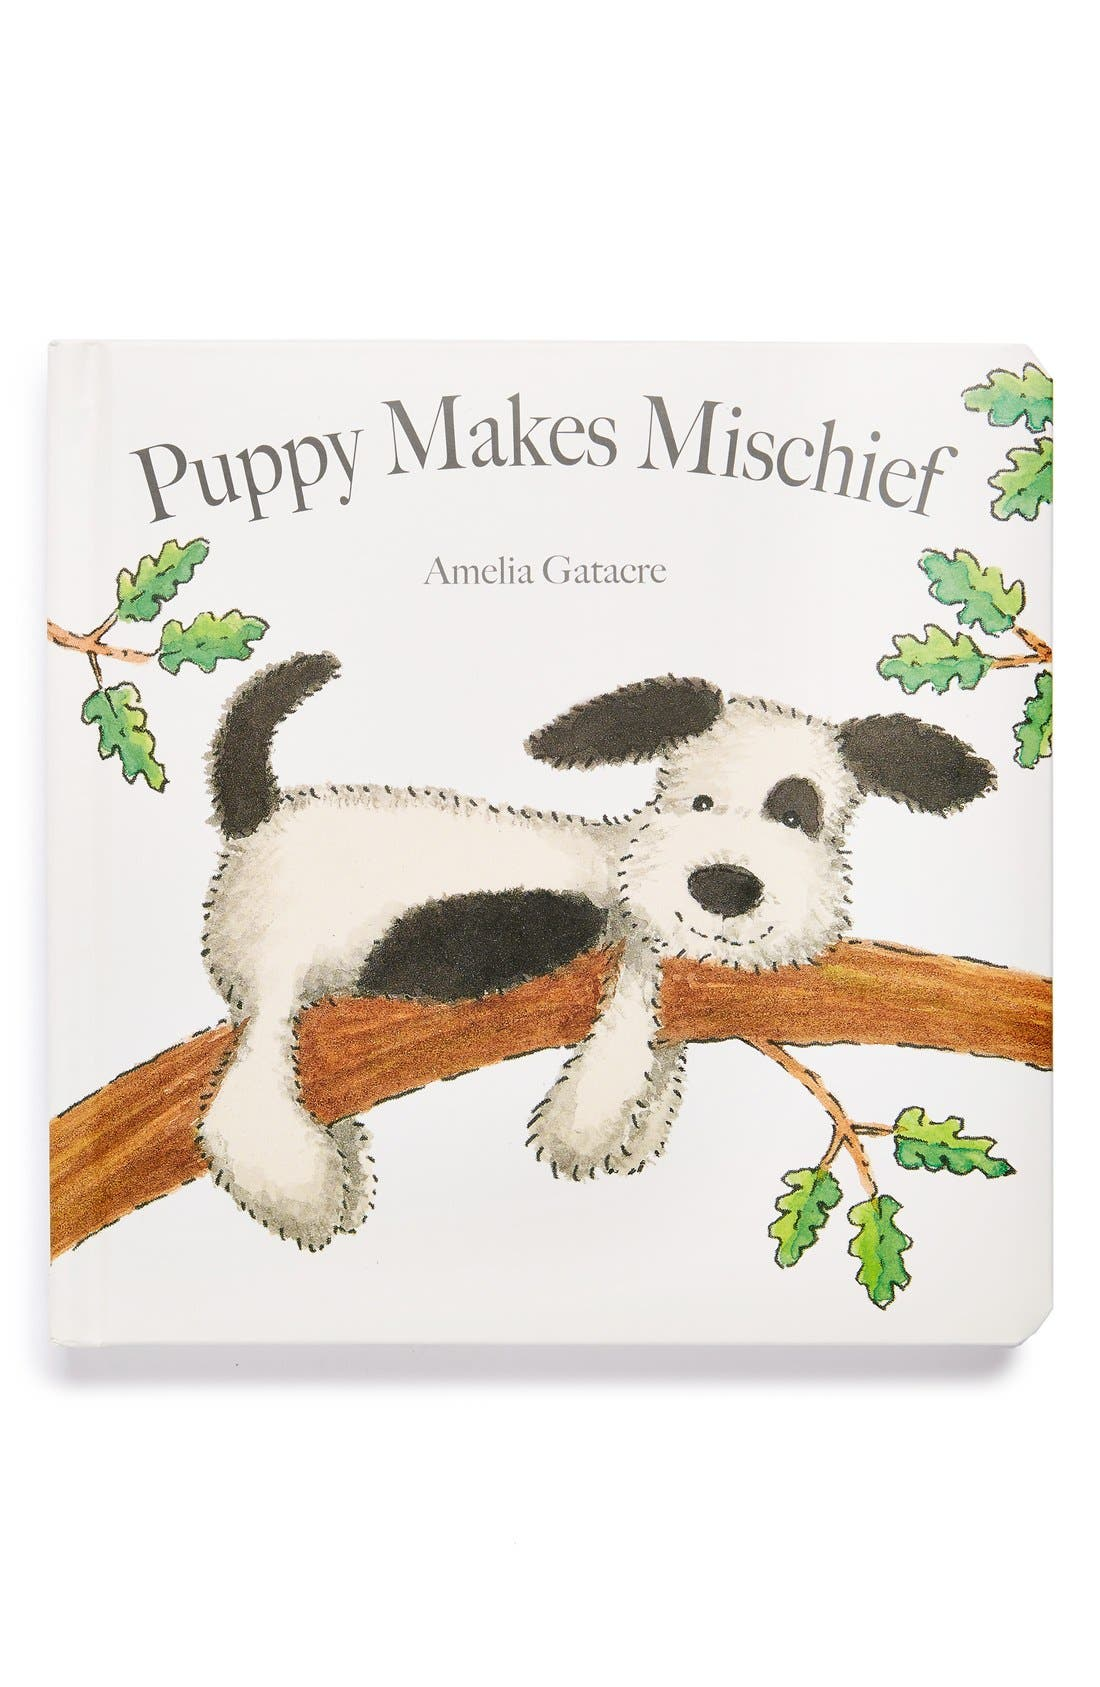 'Puppy Makes Mischief' Board Book,                             Main thumbnail 1, color,